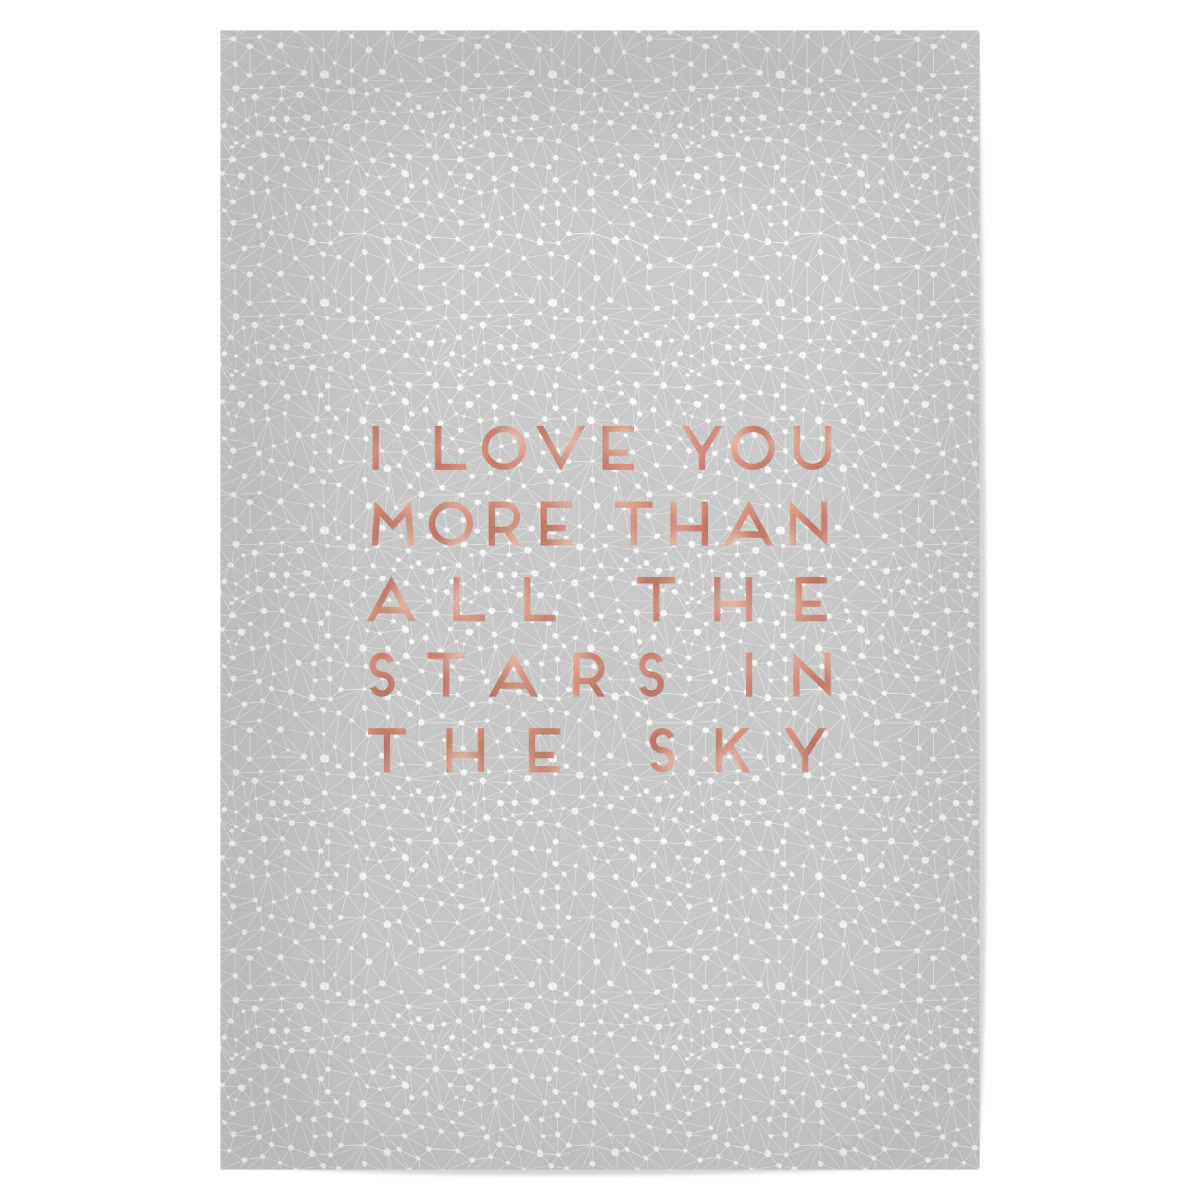 i love you more than 30x20 cm poster